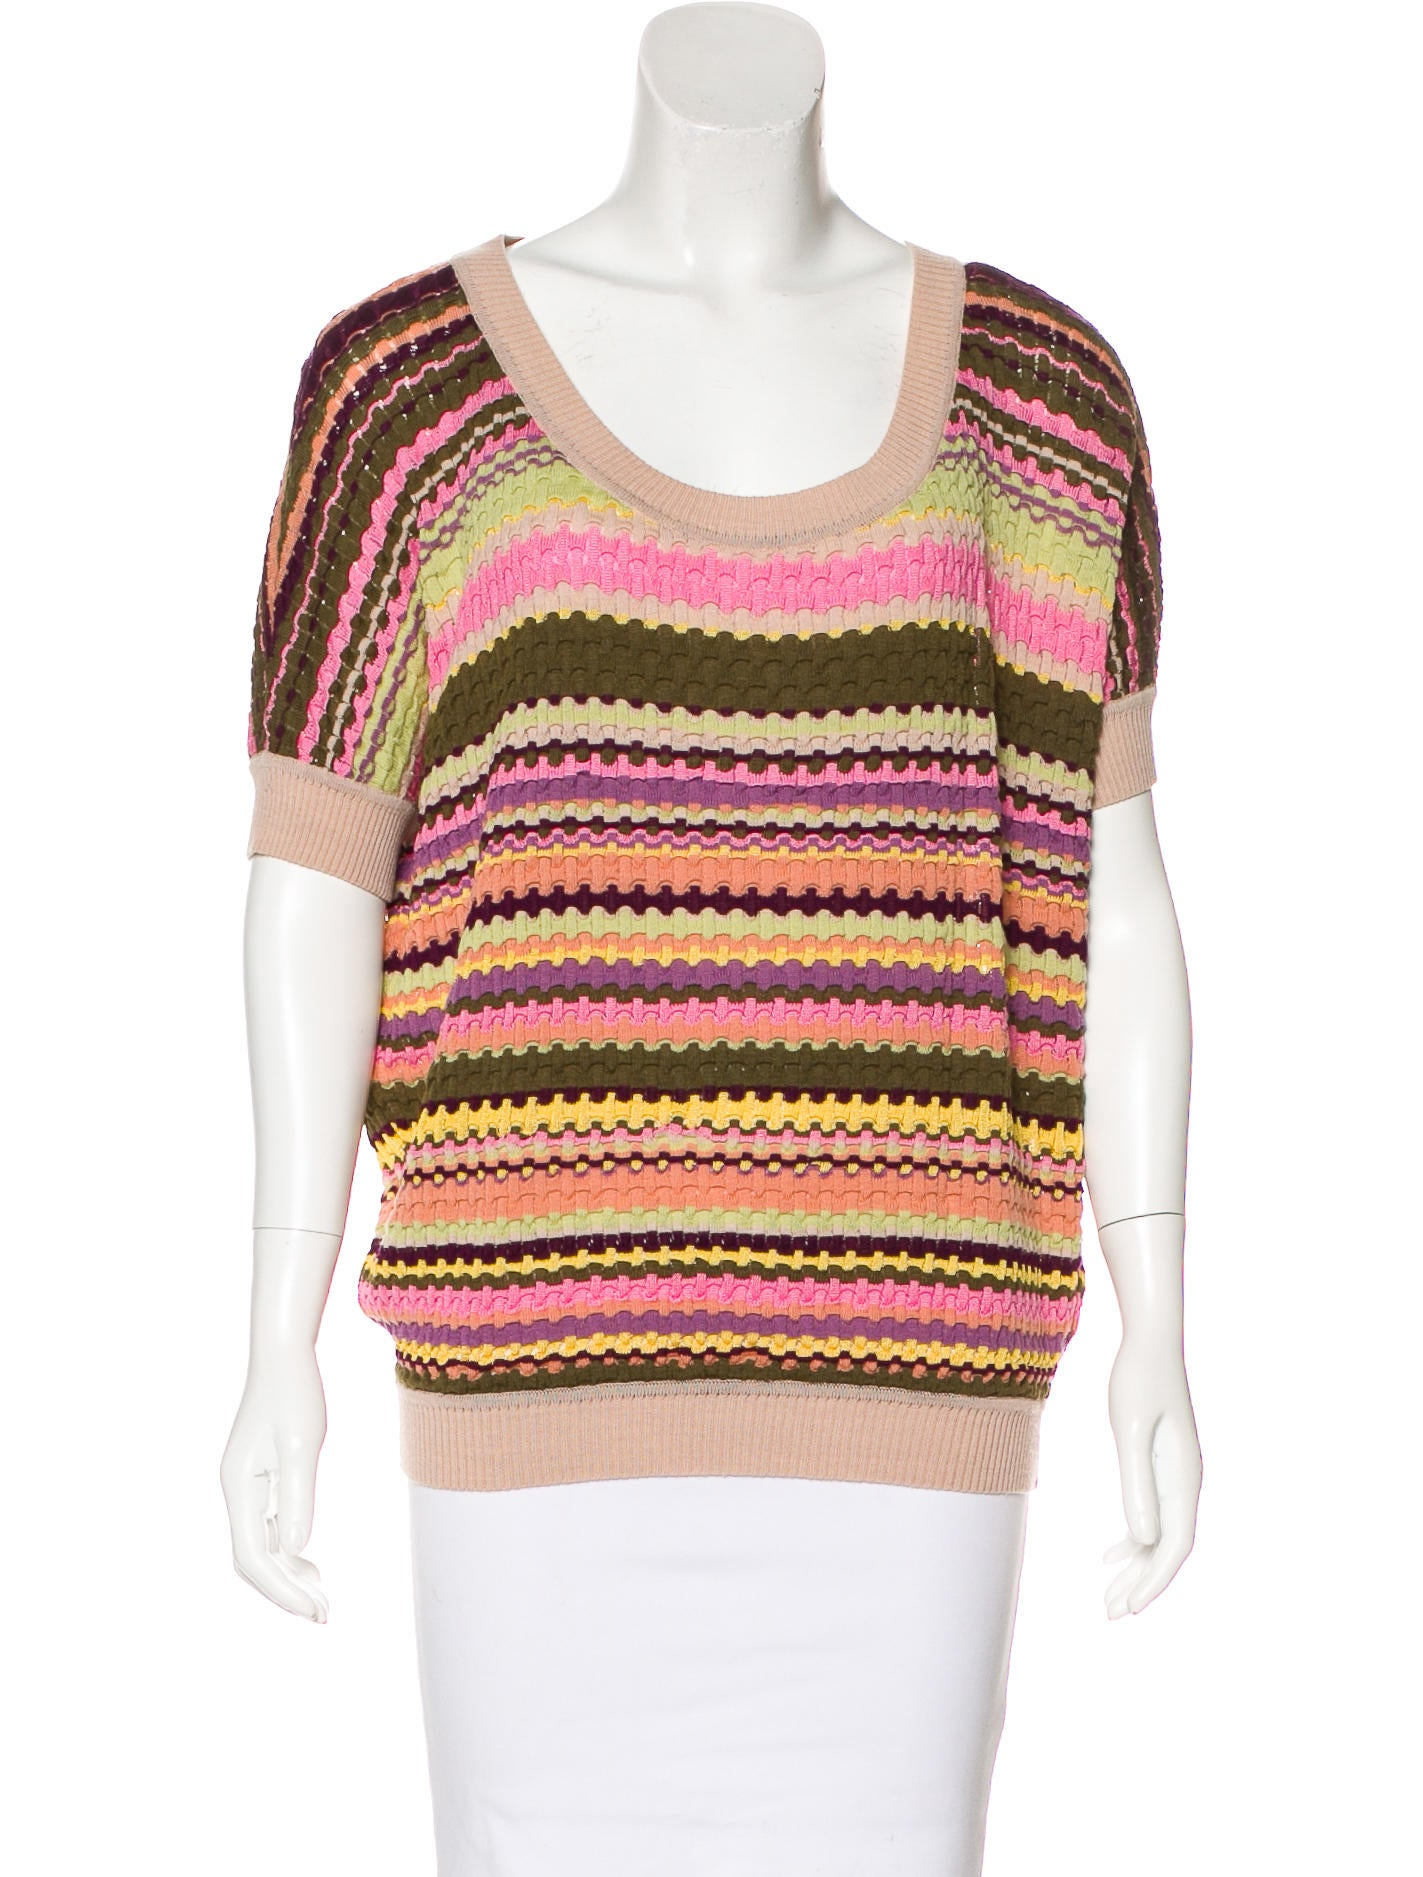 Missoni wool striped top clothing mis45535 the realreal for Best wool shirt jackets